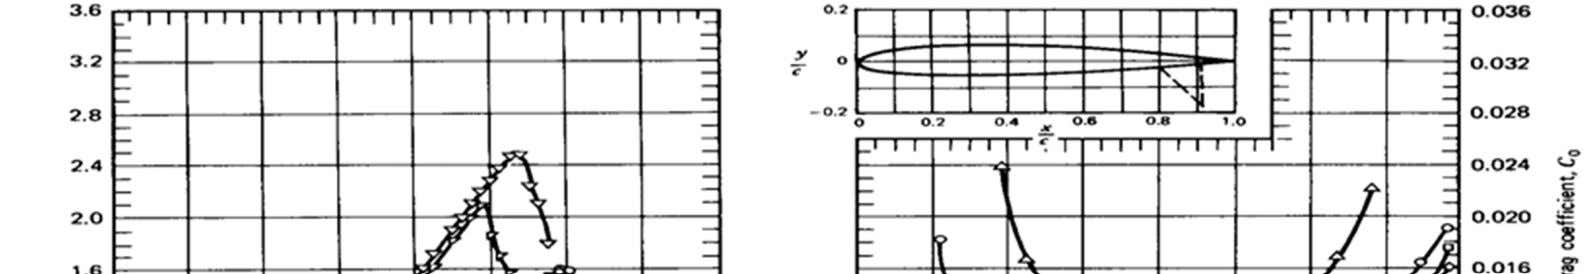 "Airfoil characteristics are strongly affected by the ""Reynolds number"" at which they are operating. The"